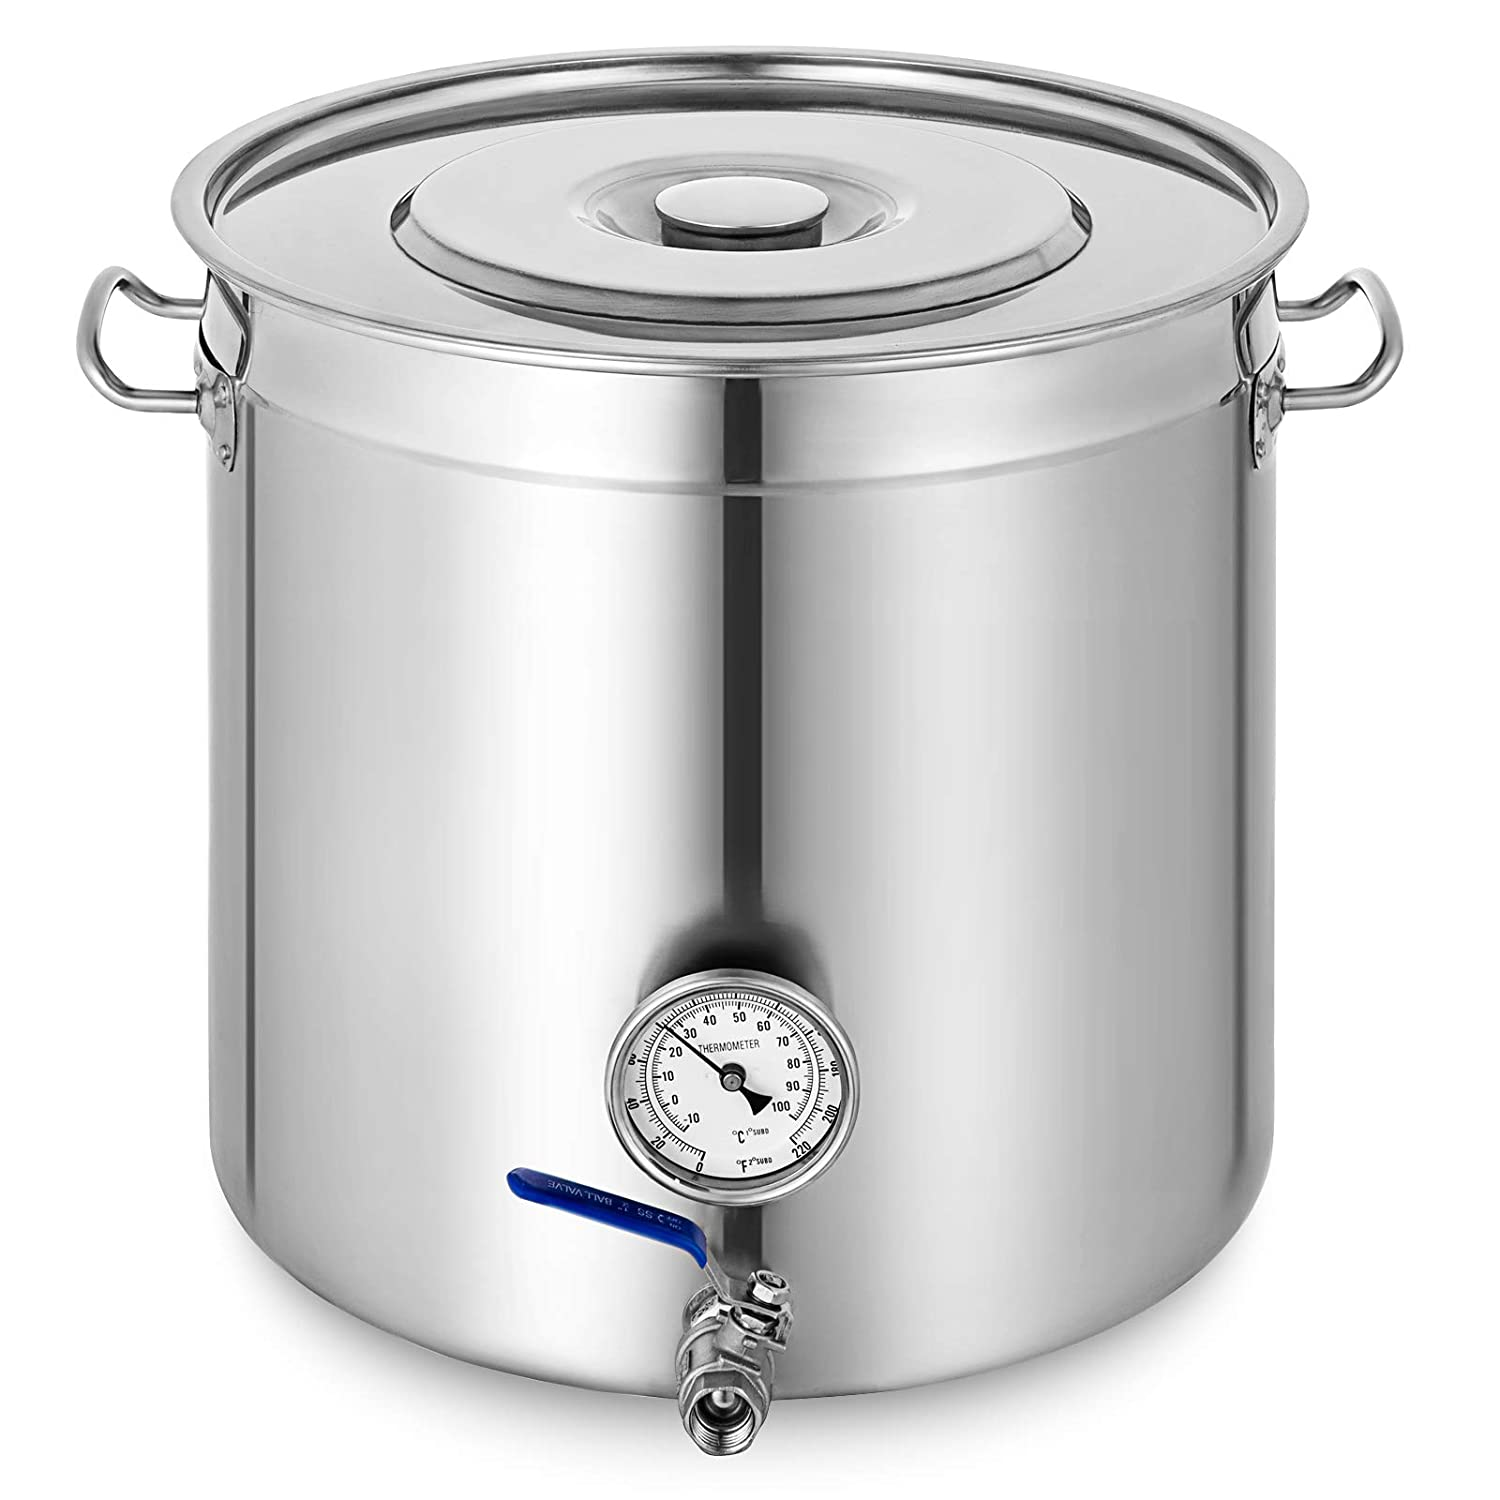 Mophorn Brew kettle Stockpot Stainless Steel Bot Brewing with lid Home Brewing for Beer Brewing Maple Syrup Stainless Steel Stock Pot Cookware (With Lid & Thermometer, 180 Quart)